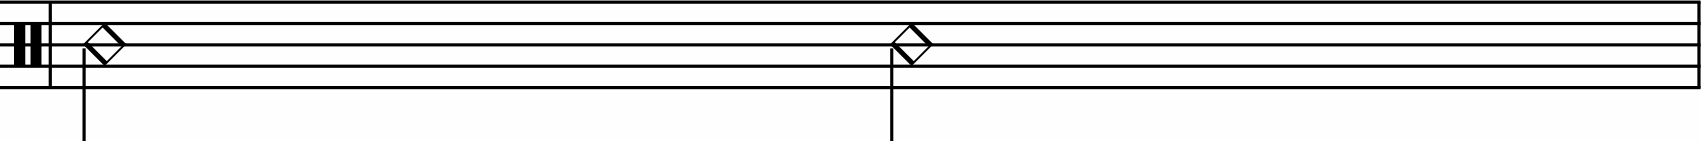 Half note rhythm example.